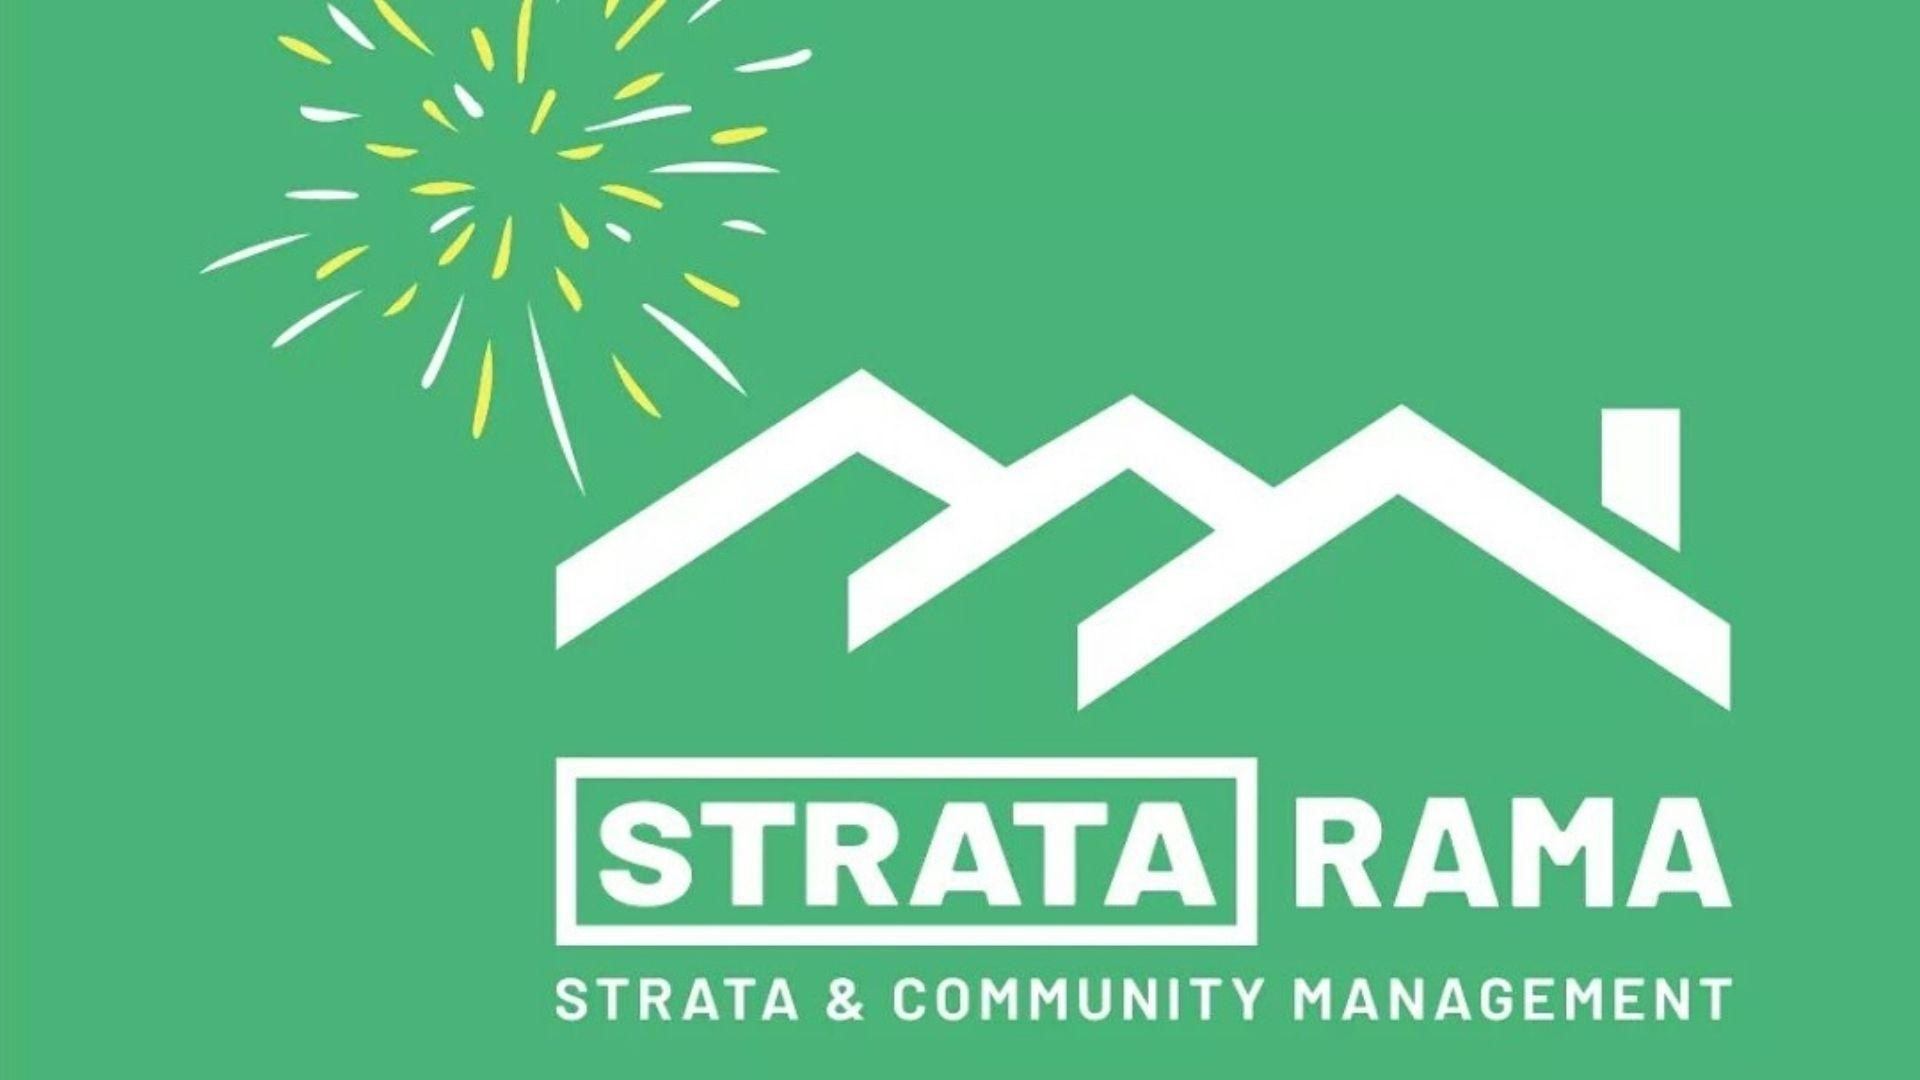 The top name in strata management in Adelaide, Tony Johnson, under the corporate Stratarama can streamline corporate management tasks